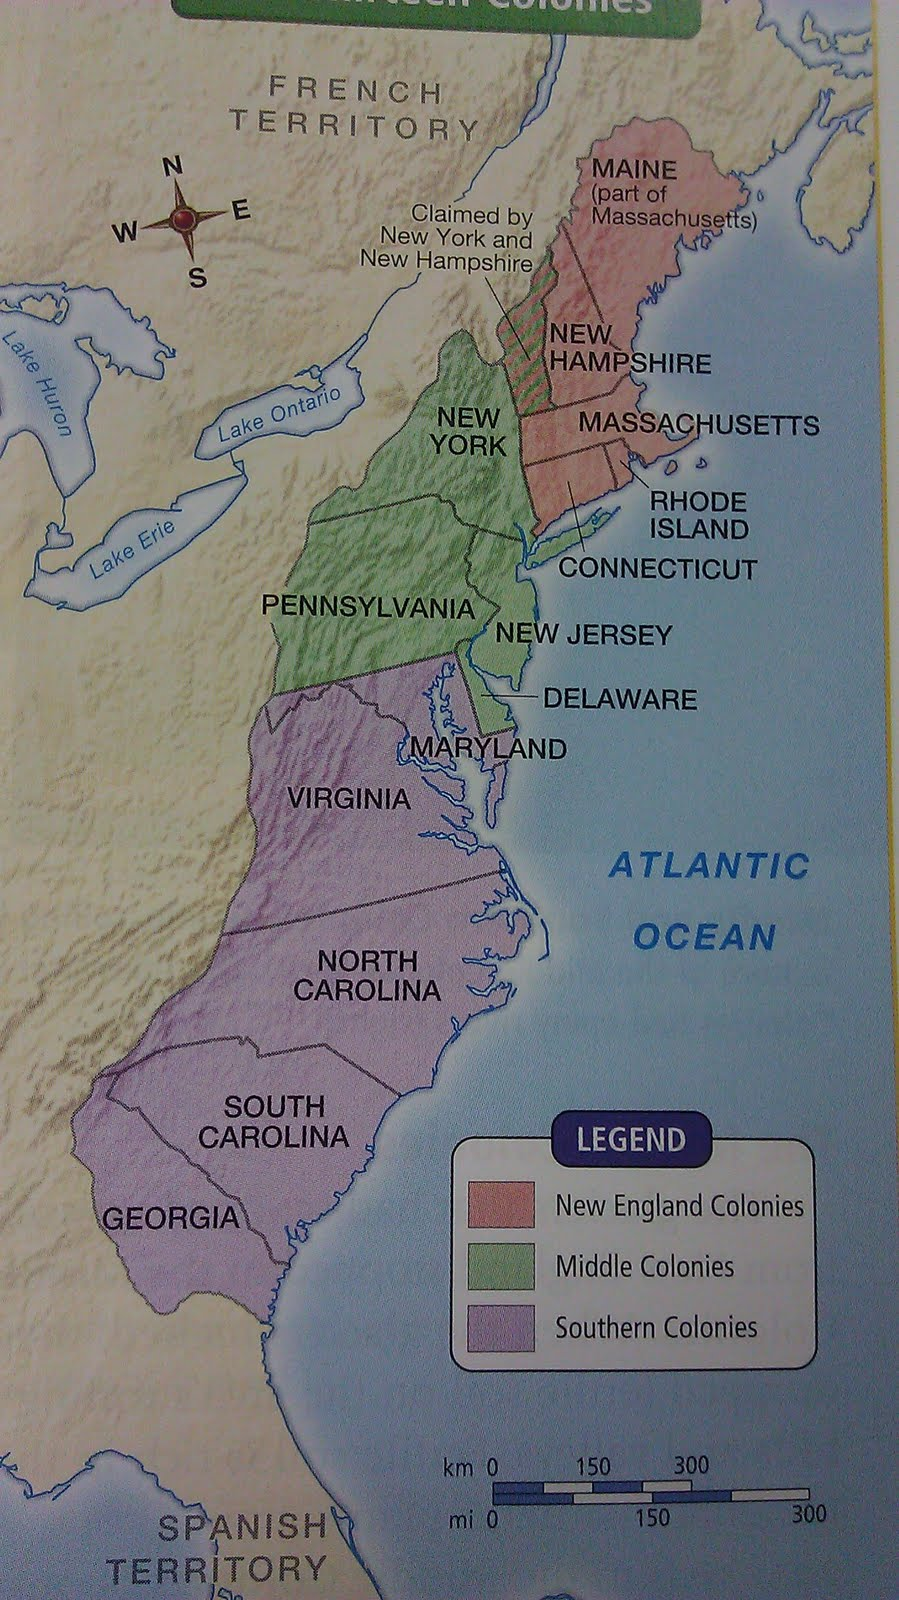 13 Colonies Regions Map of 13 colonies labeled